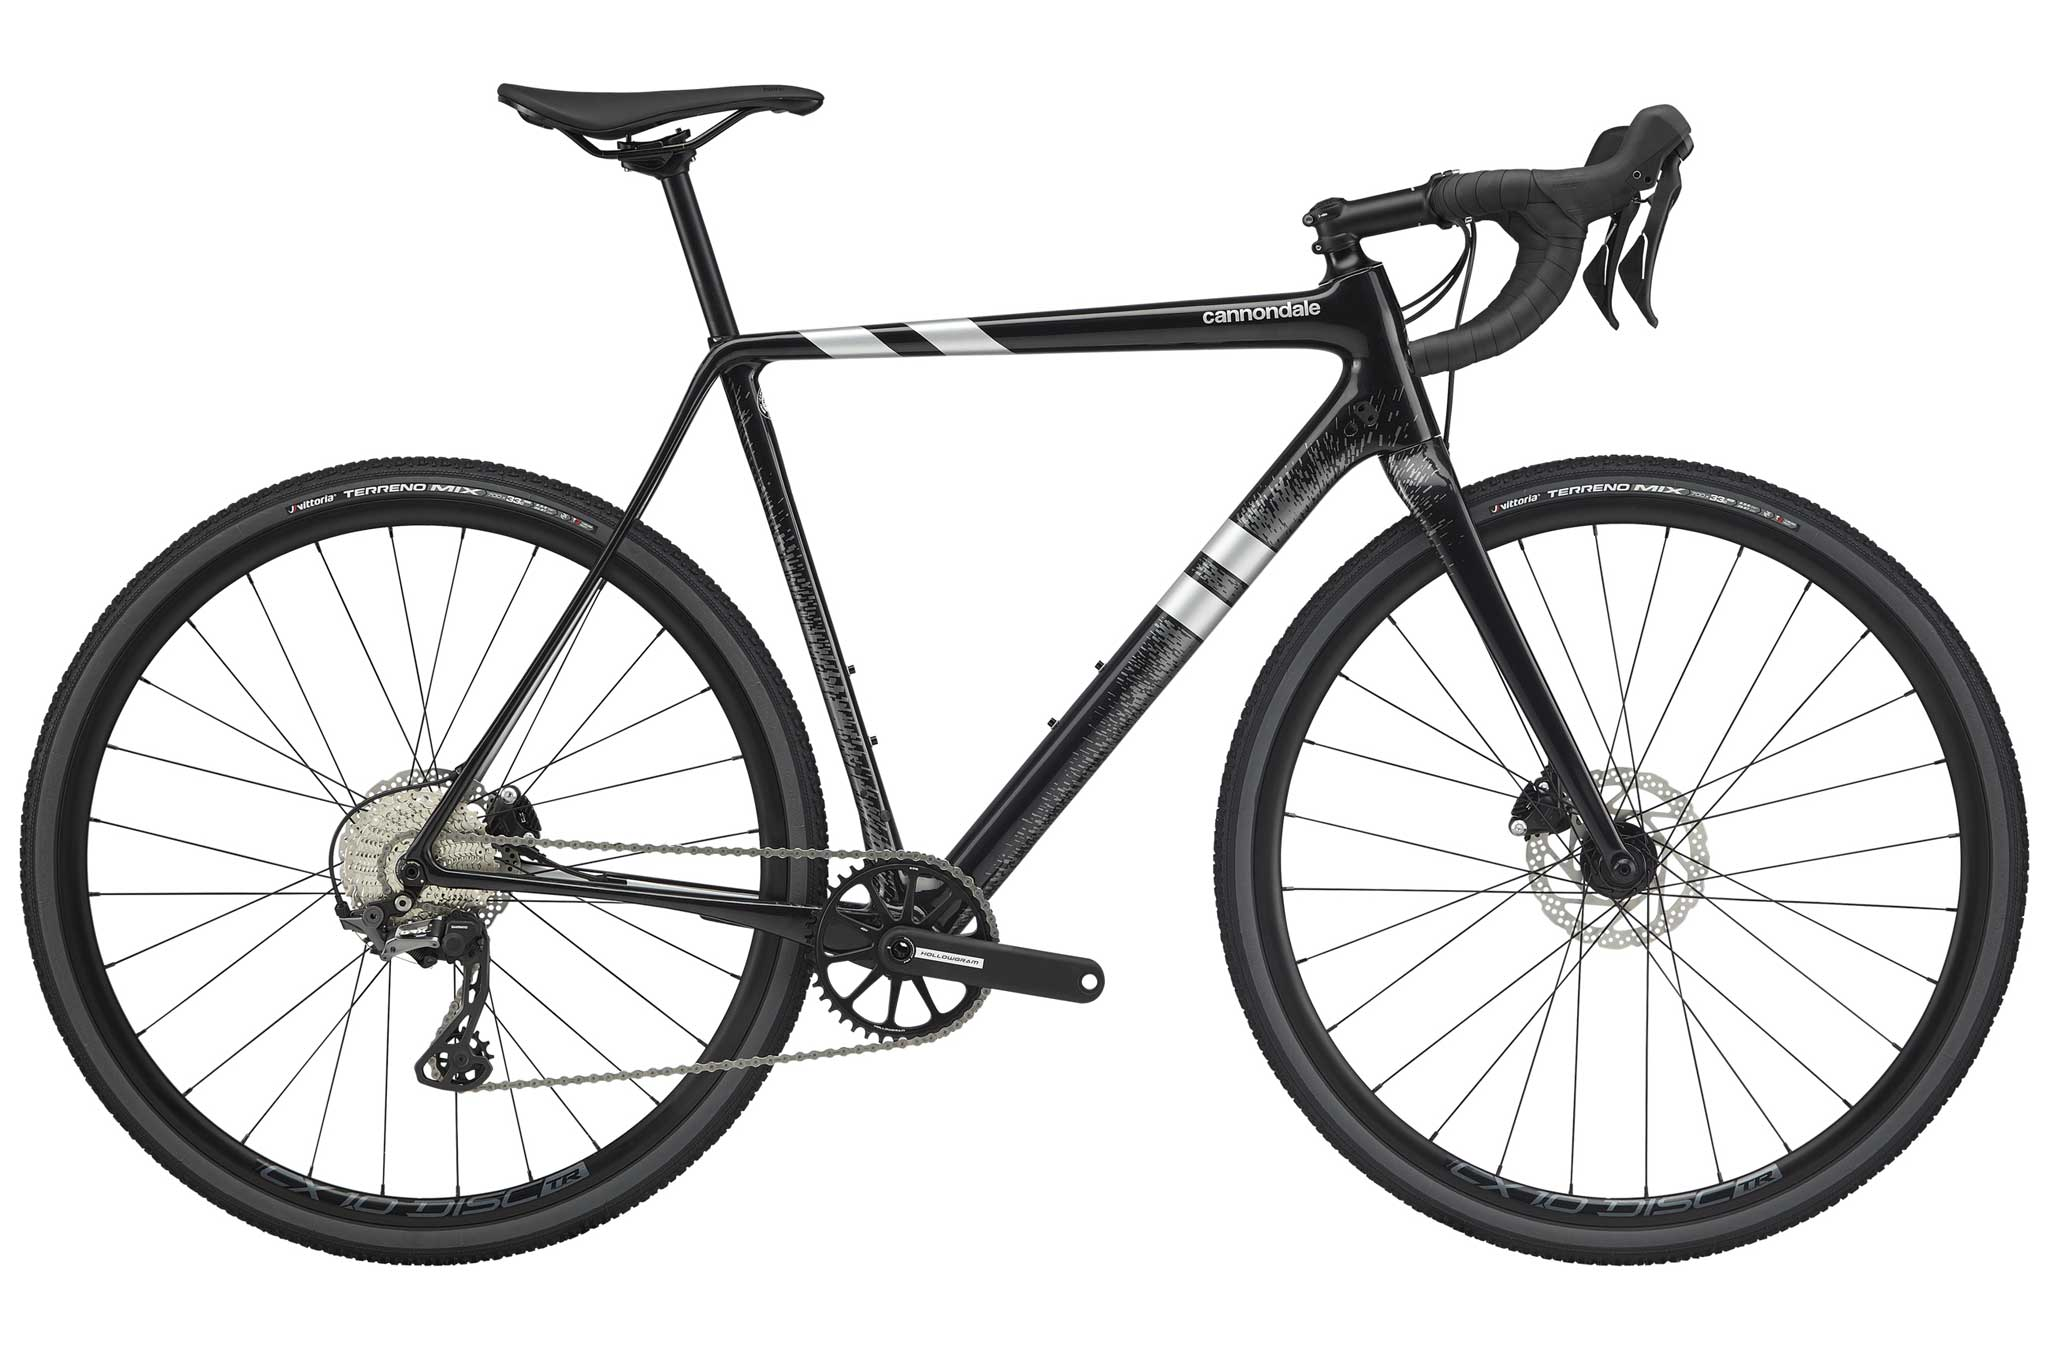 cannondale-superx-grx-2020-cyclocross-bike-black-EV360822-8500-1